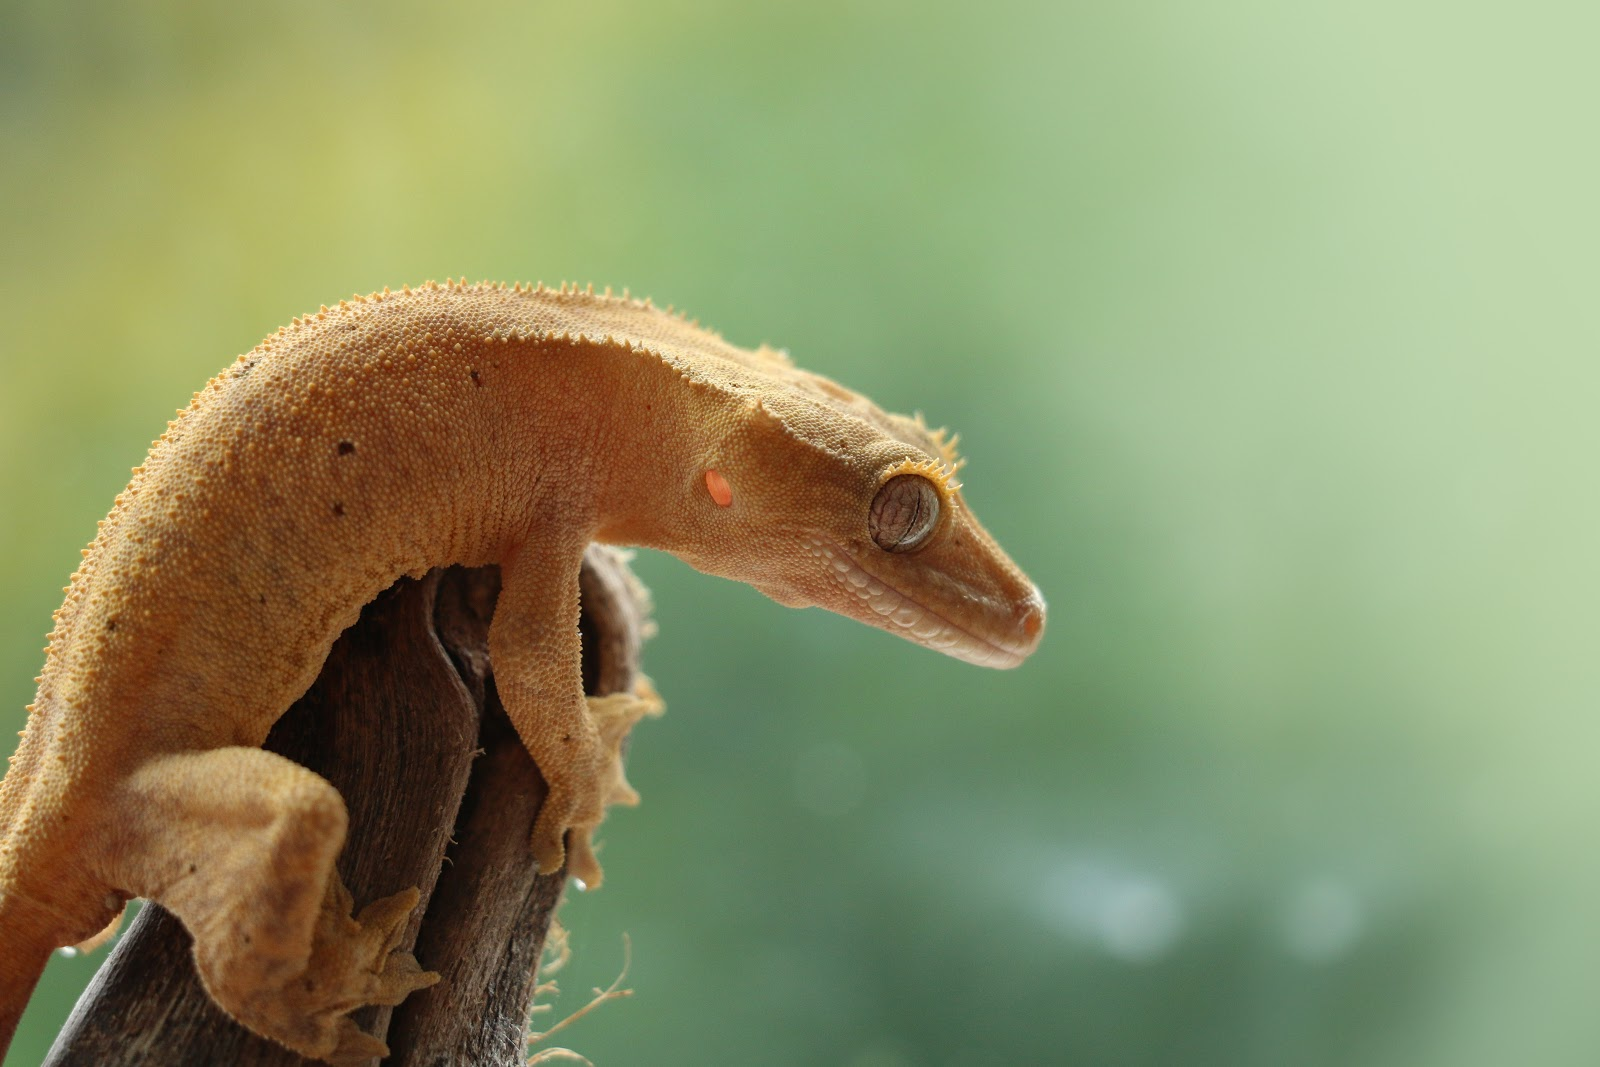 Gecko on branch